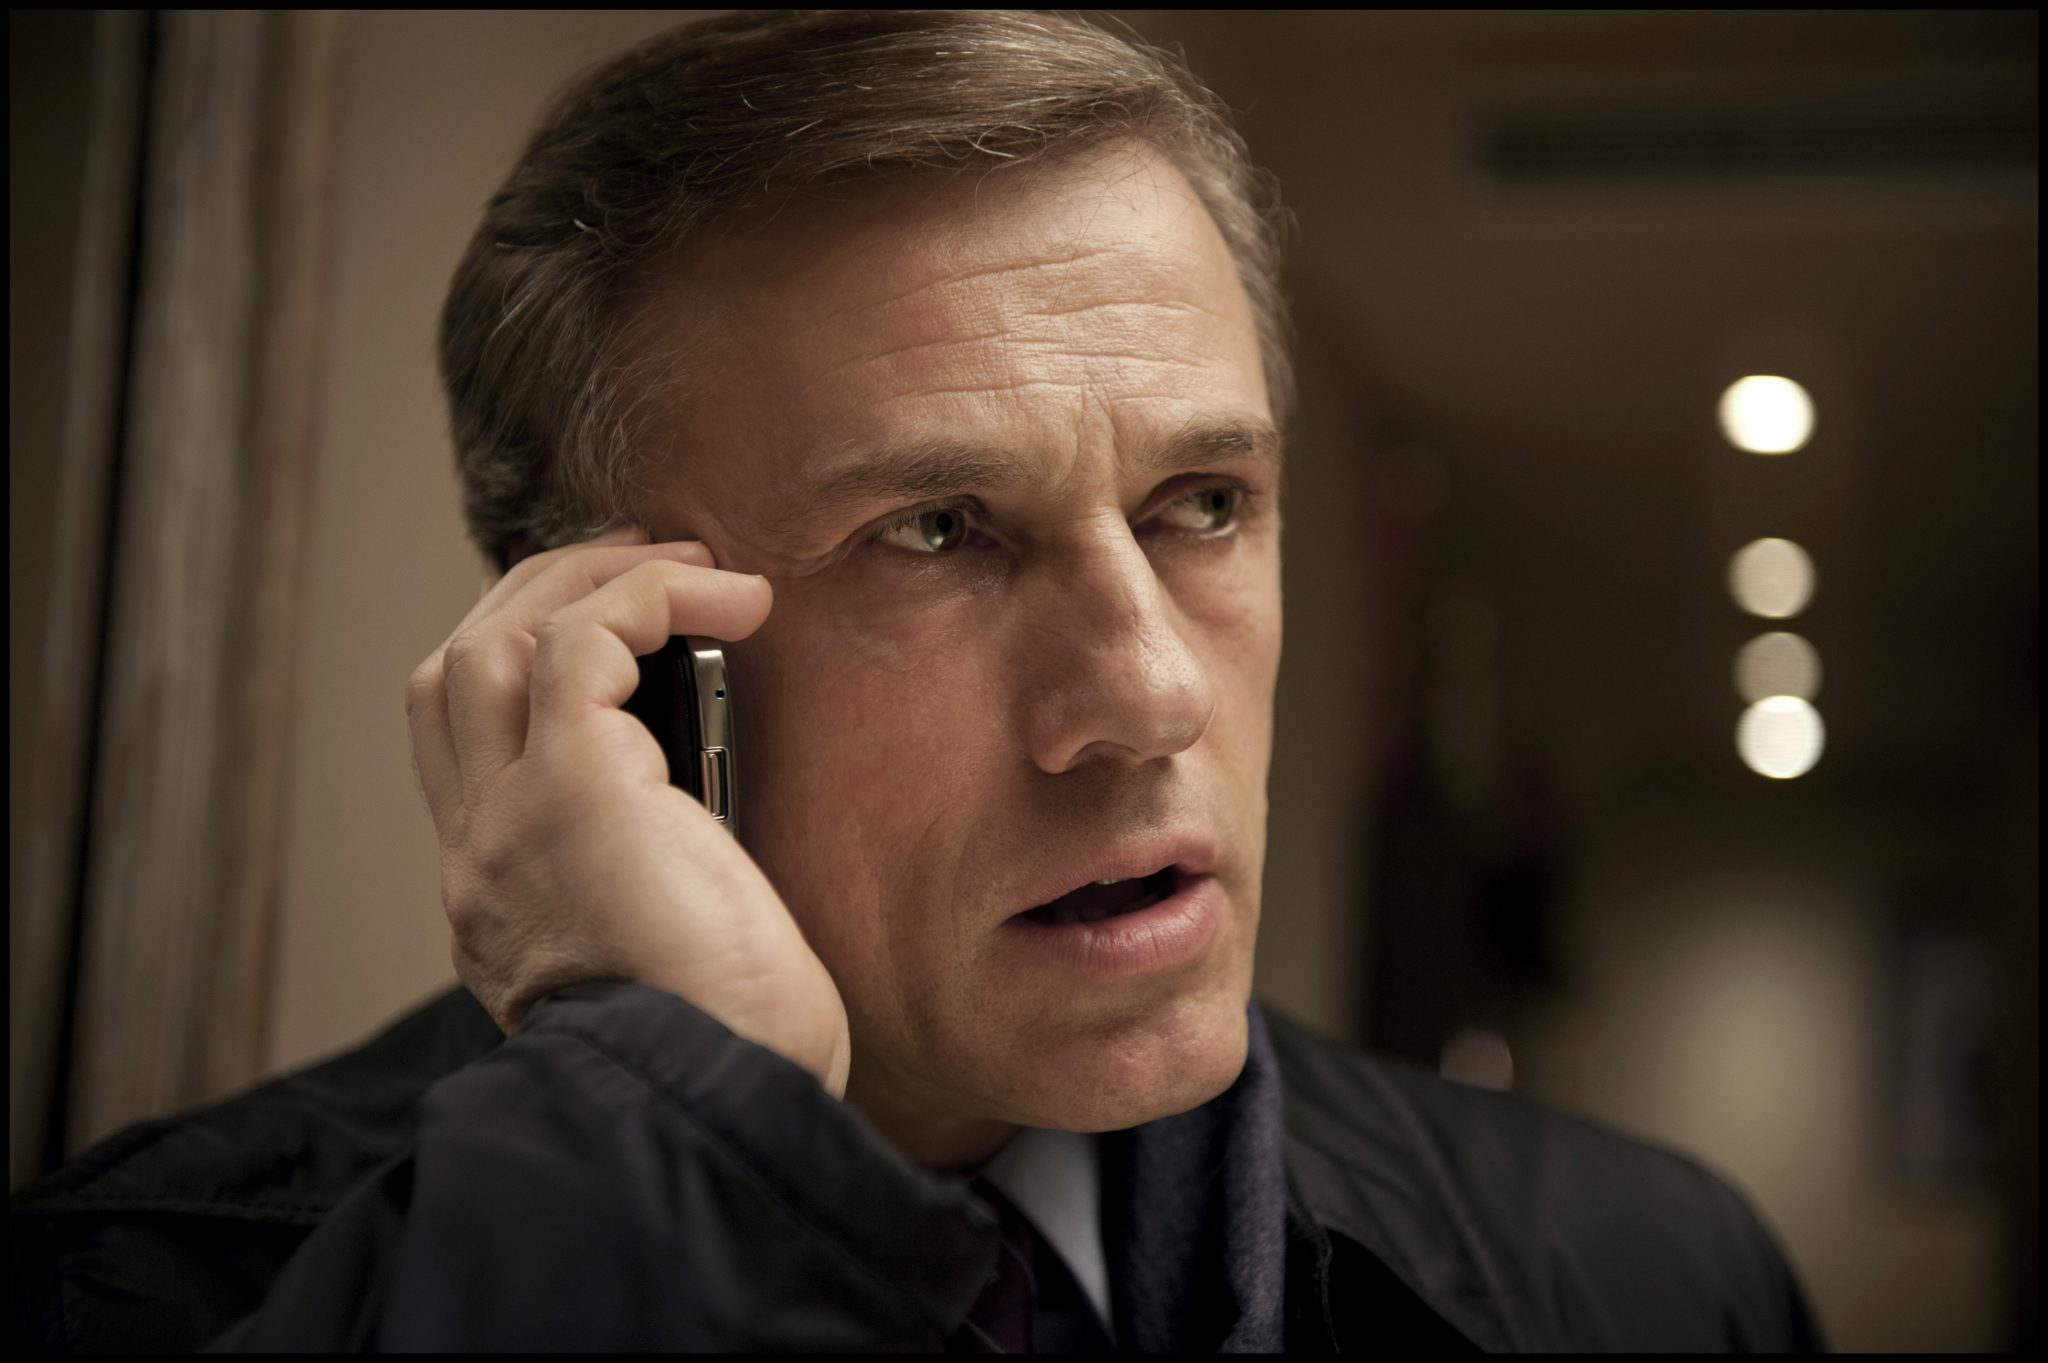 Christoph Waltz to play villain in Bond 24?